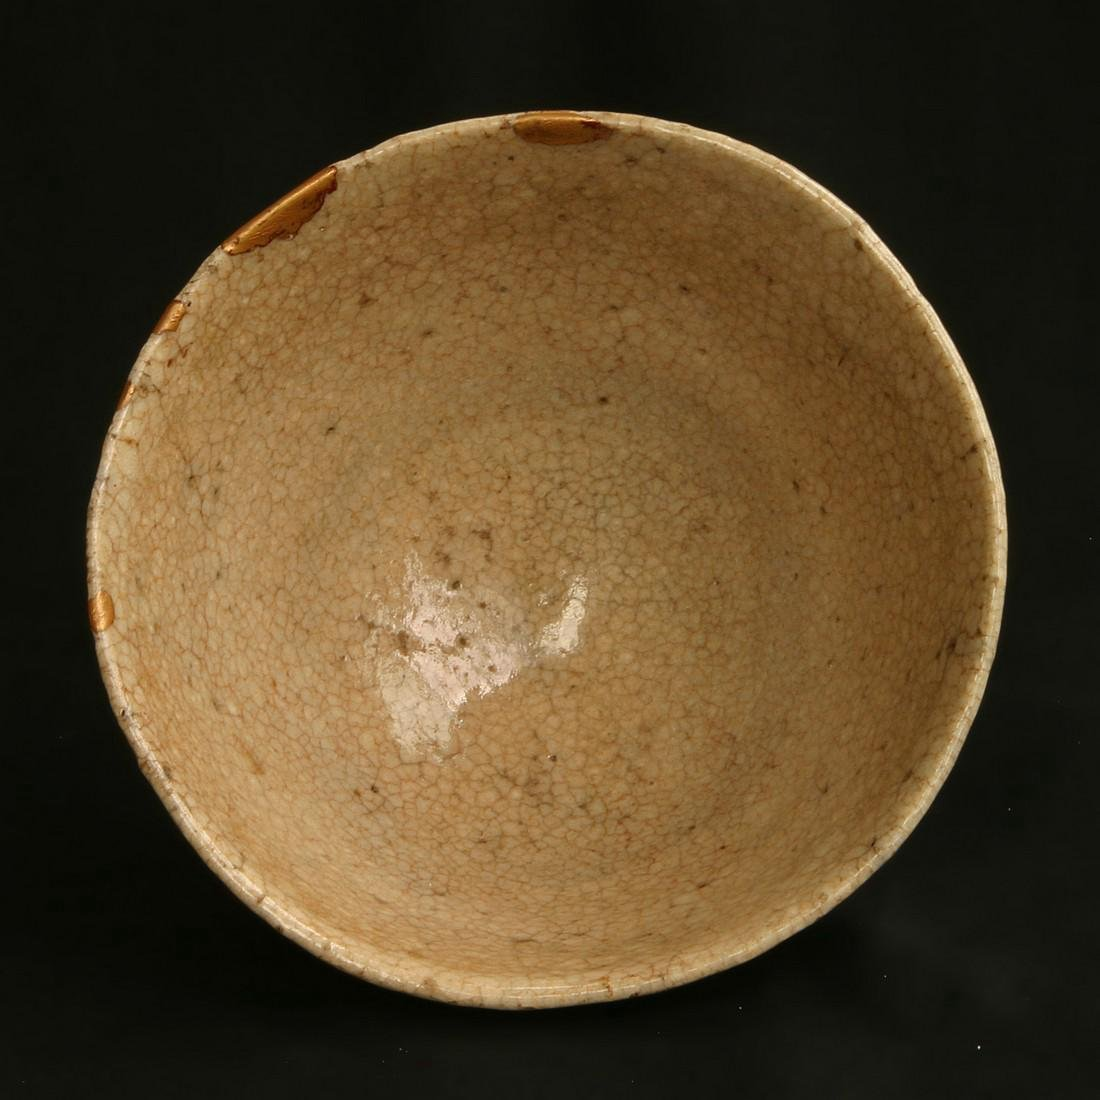 Antique Japanese Edo Glazed Ceramic Tea Bowl, 18th C - 5